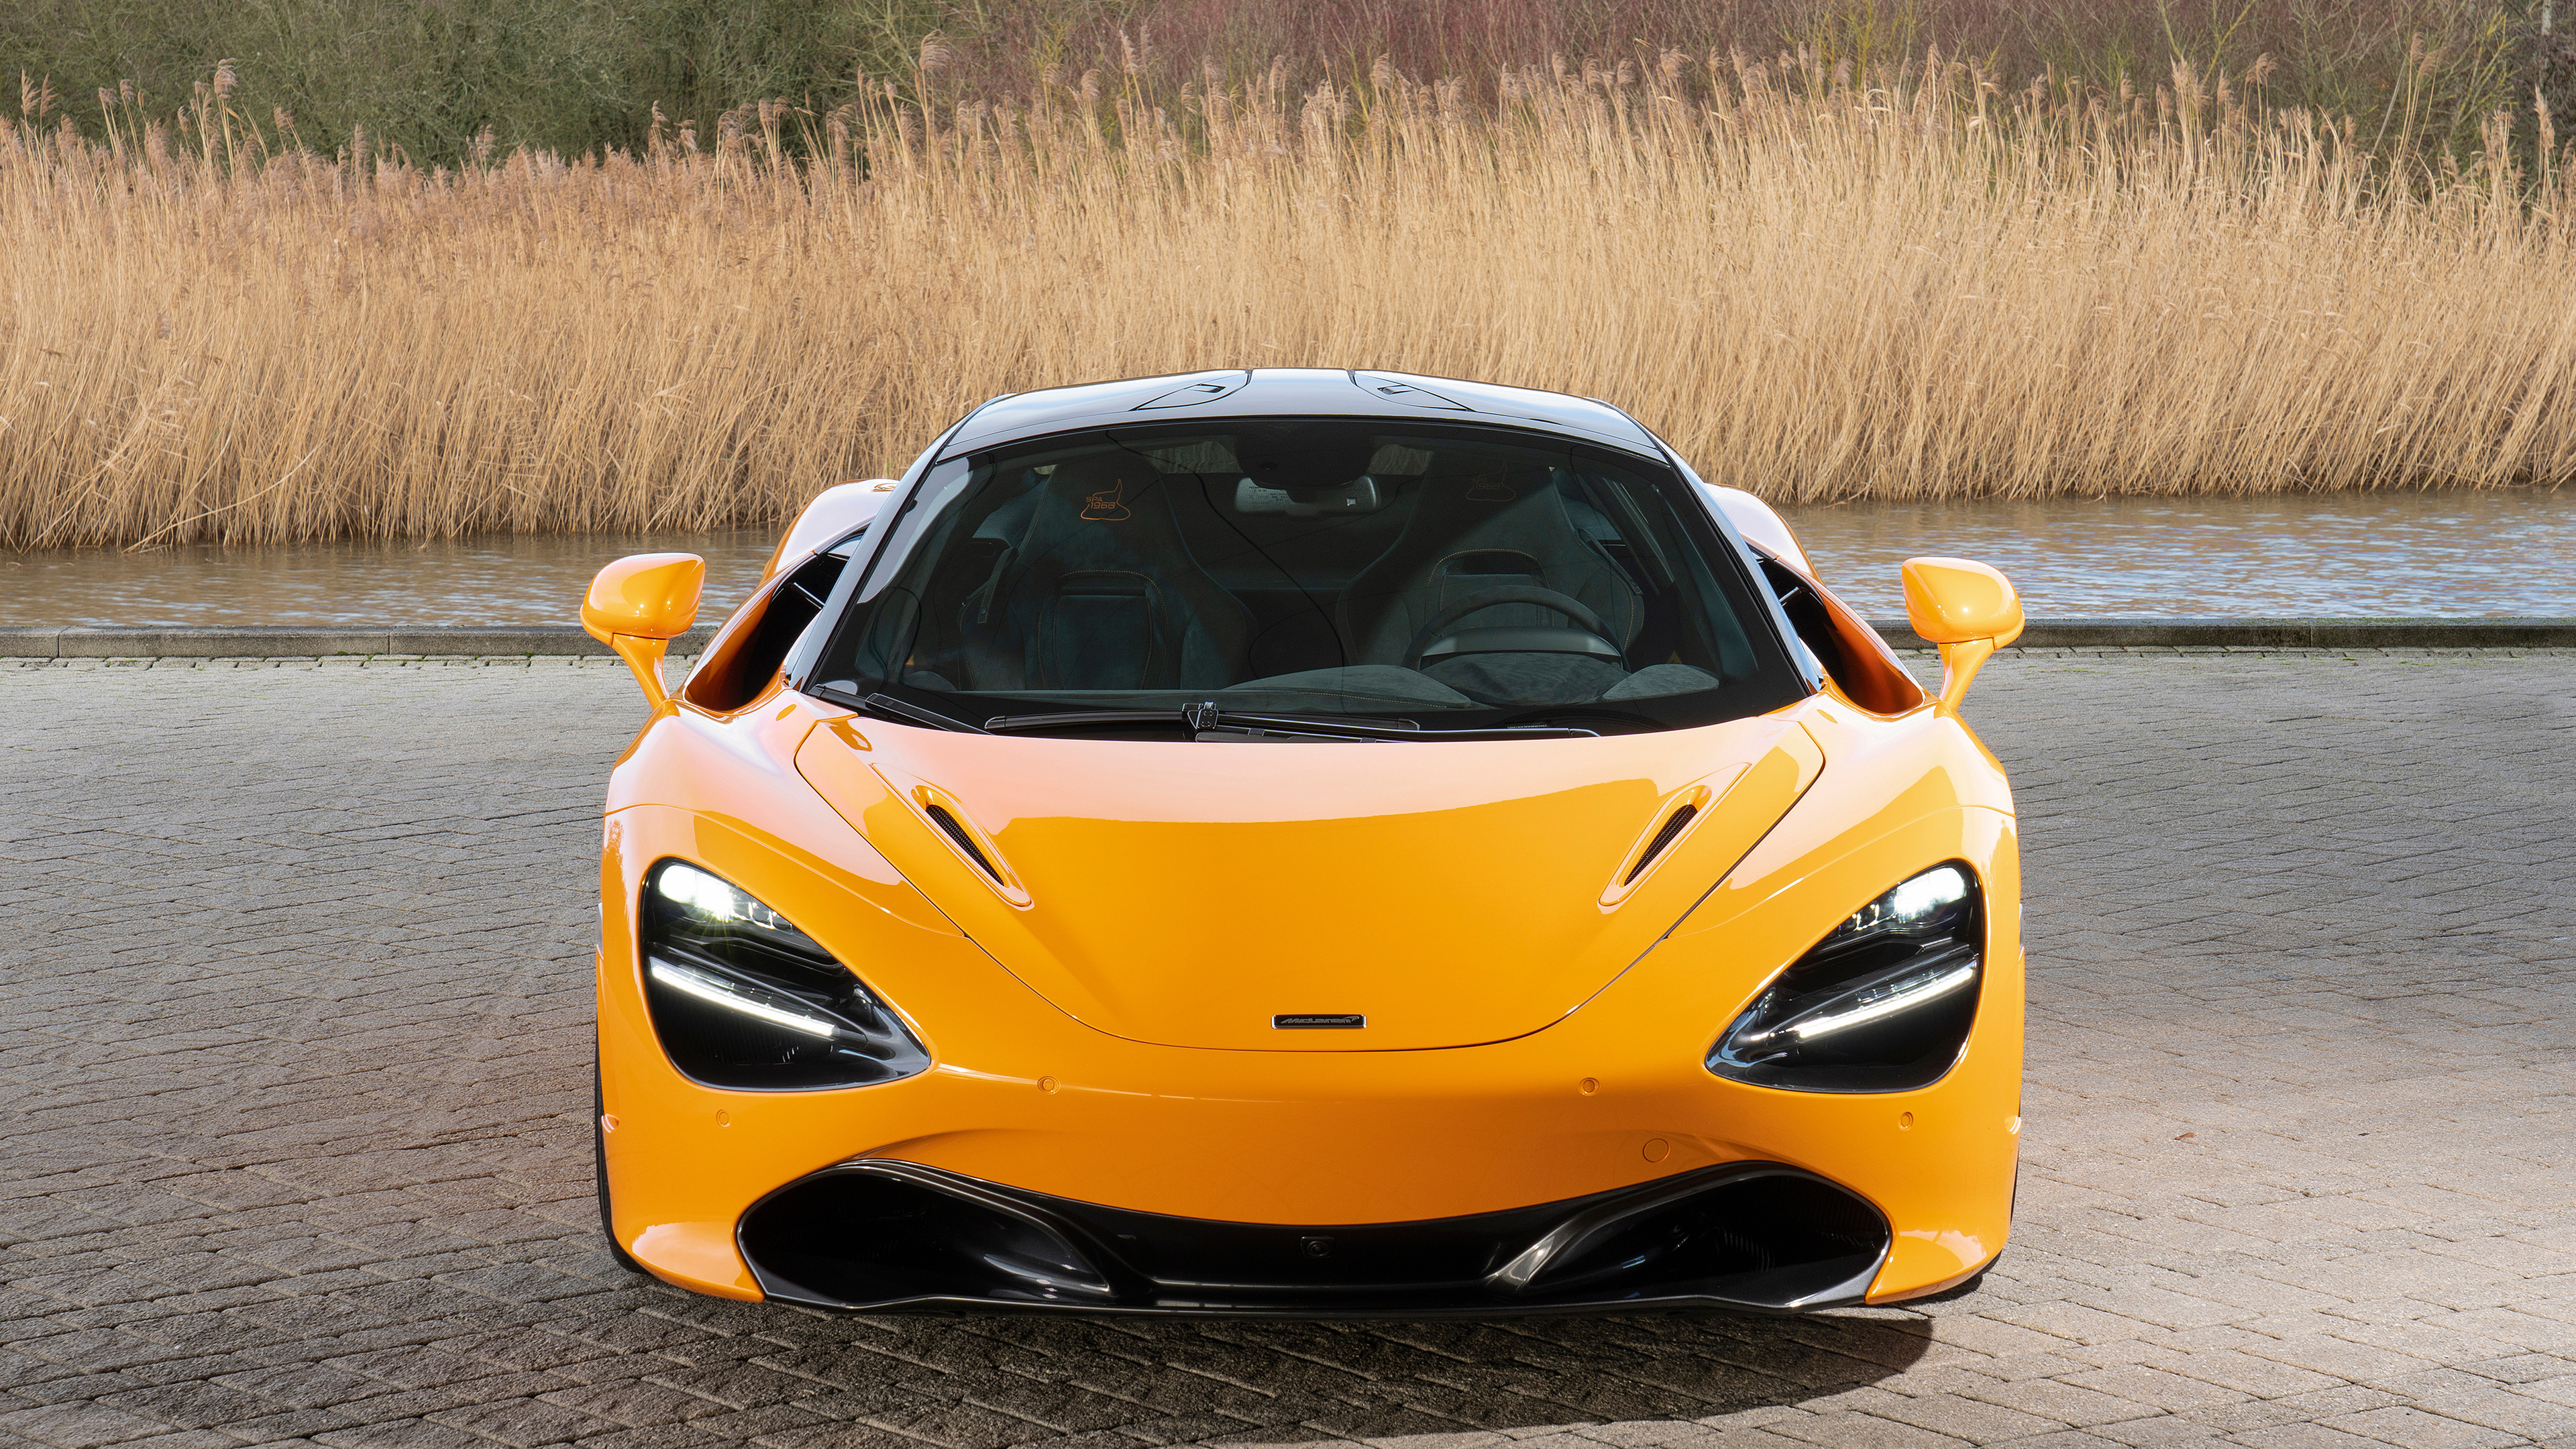 mclaren mso 720s spa 68 2019 4k 1547936814 - McLaren MSO 720S Spa 68 2019 4k - mclaren wallpapers, mclaren 720s wallpapers, hd-wallpapers, cars wallpapers, 4k-wallpapers, 2019 cars wallpapers